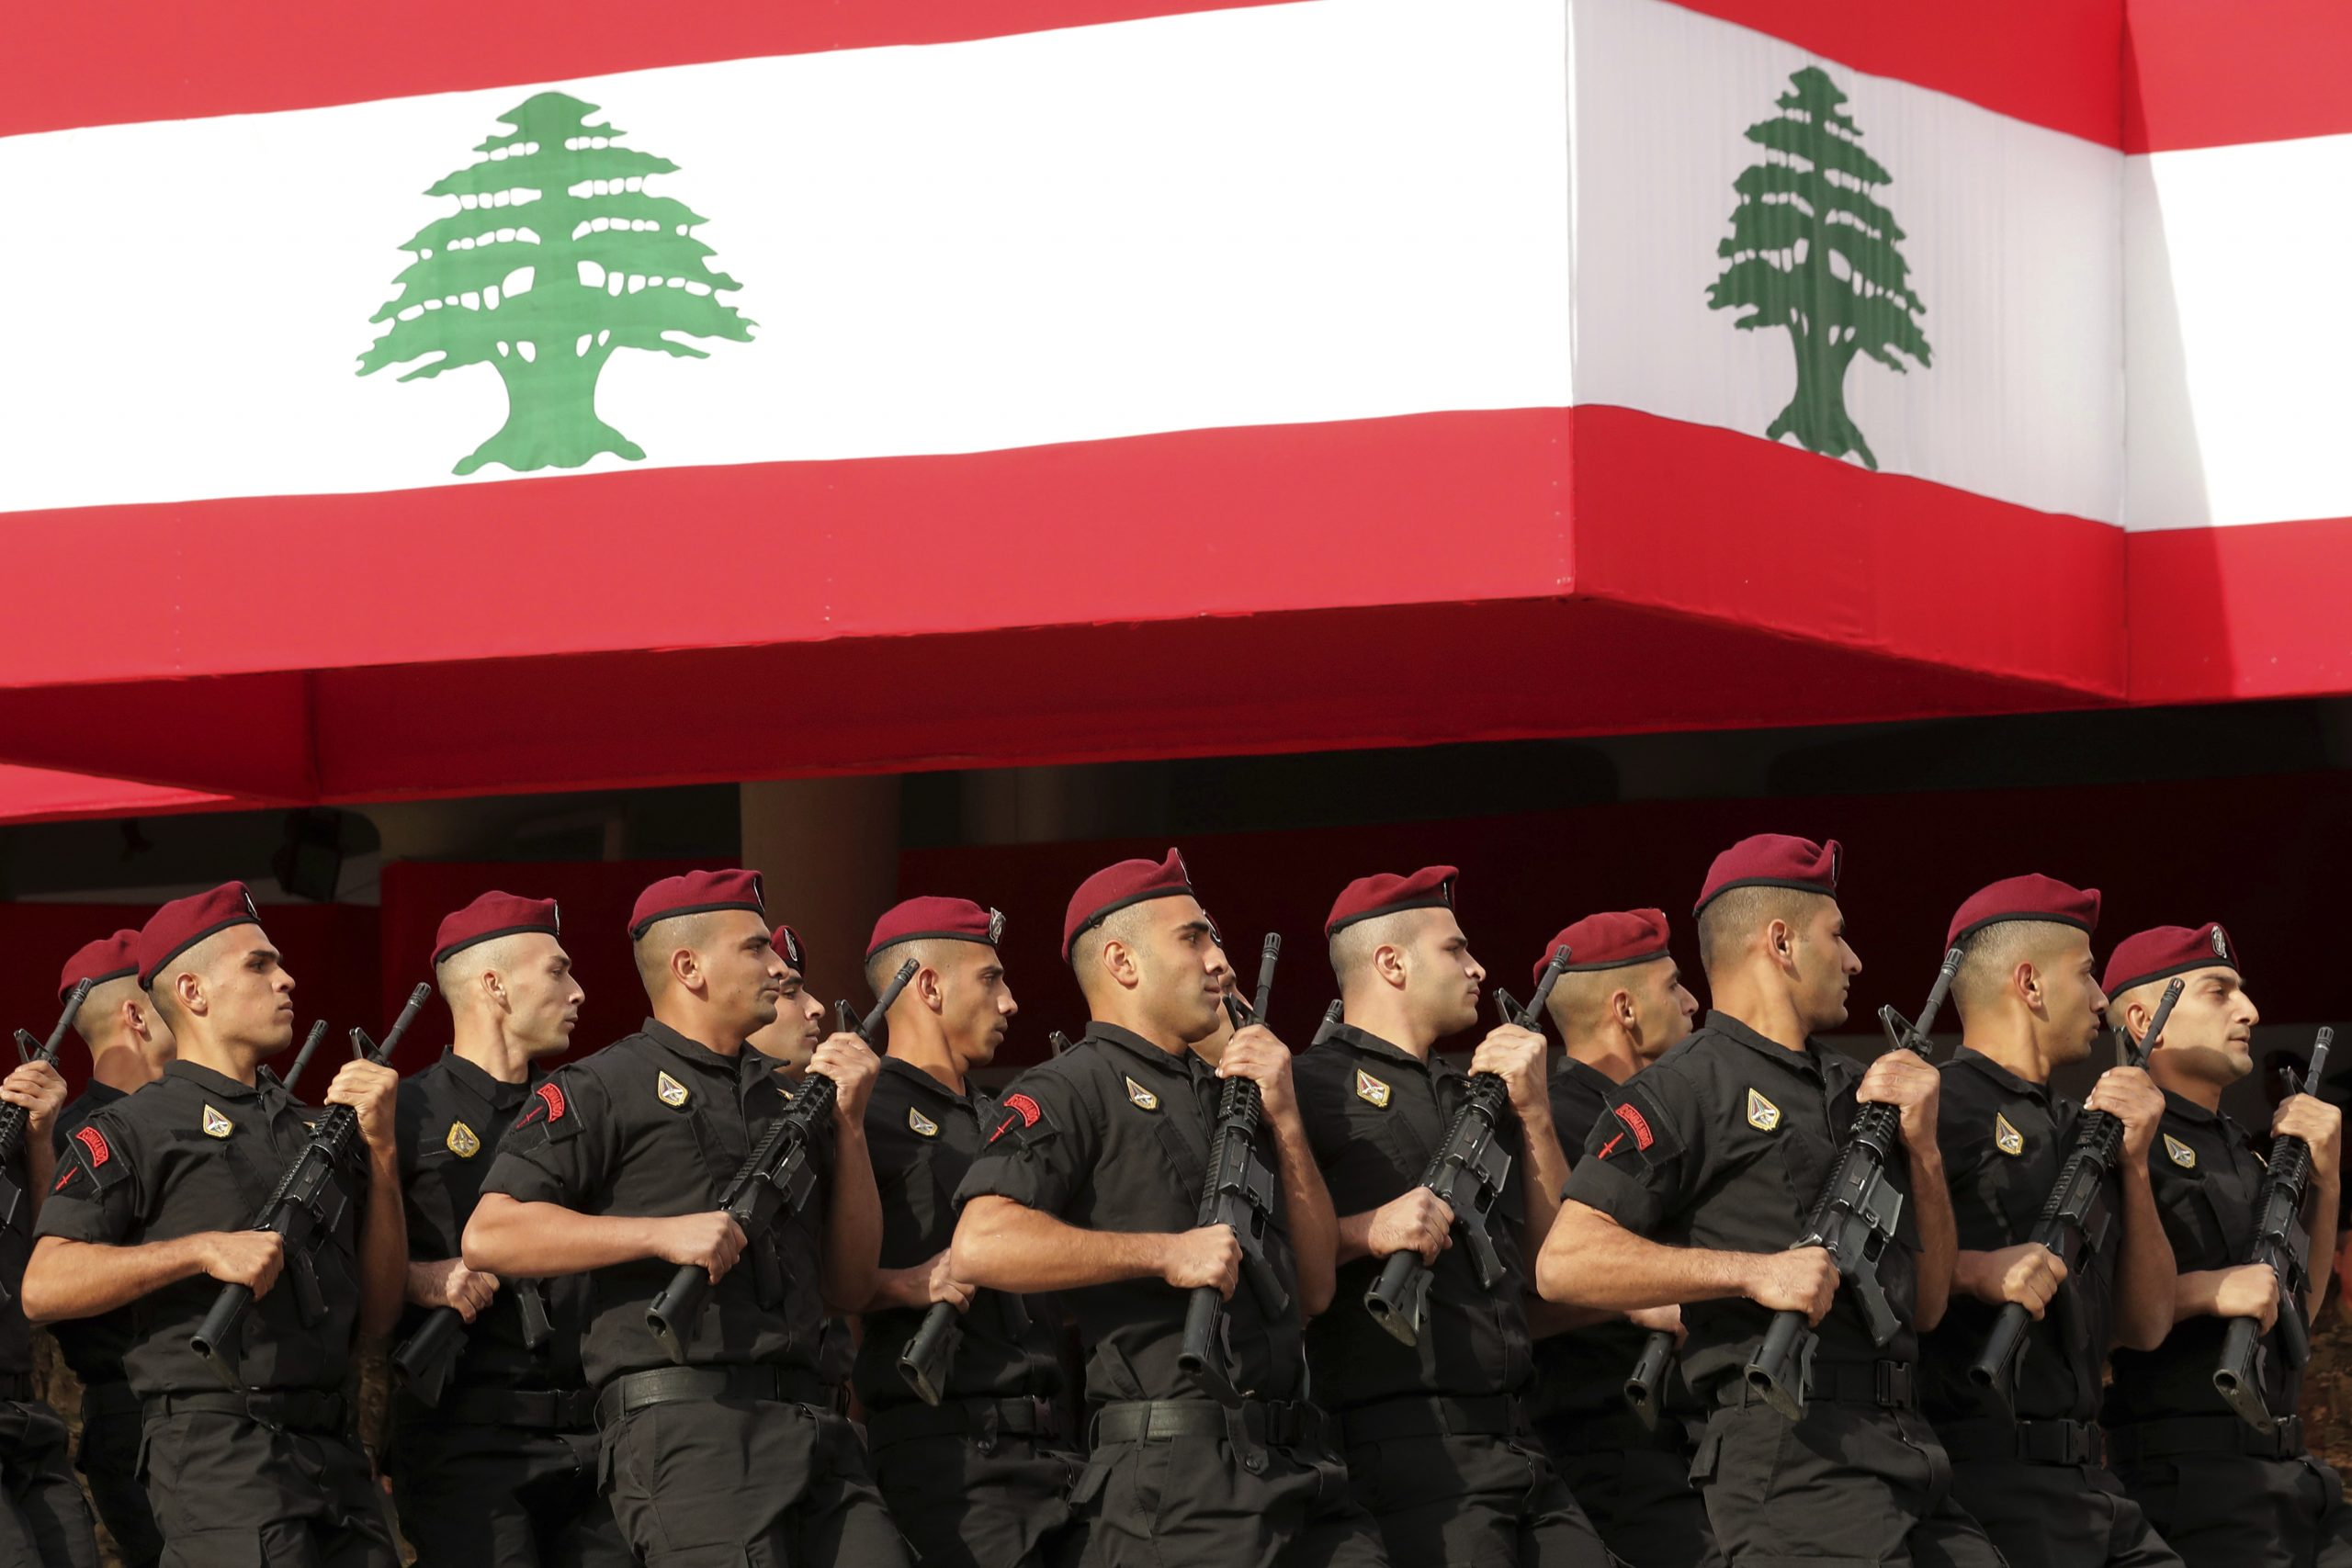 The Trump Administration releases more than $ 100 million in military aid to Lebanon